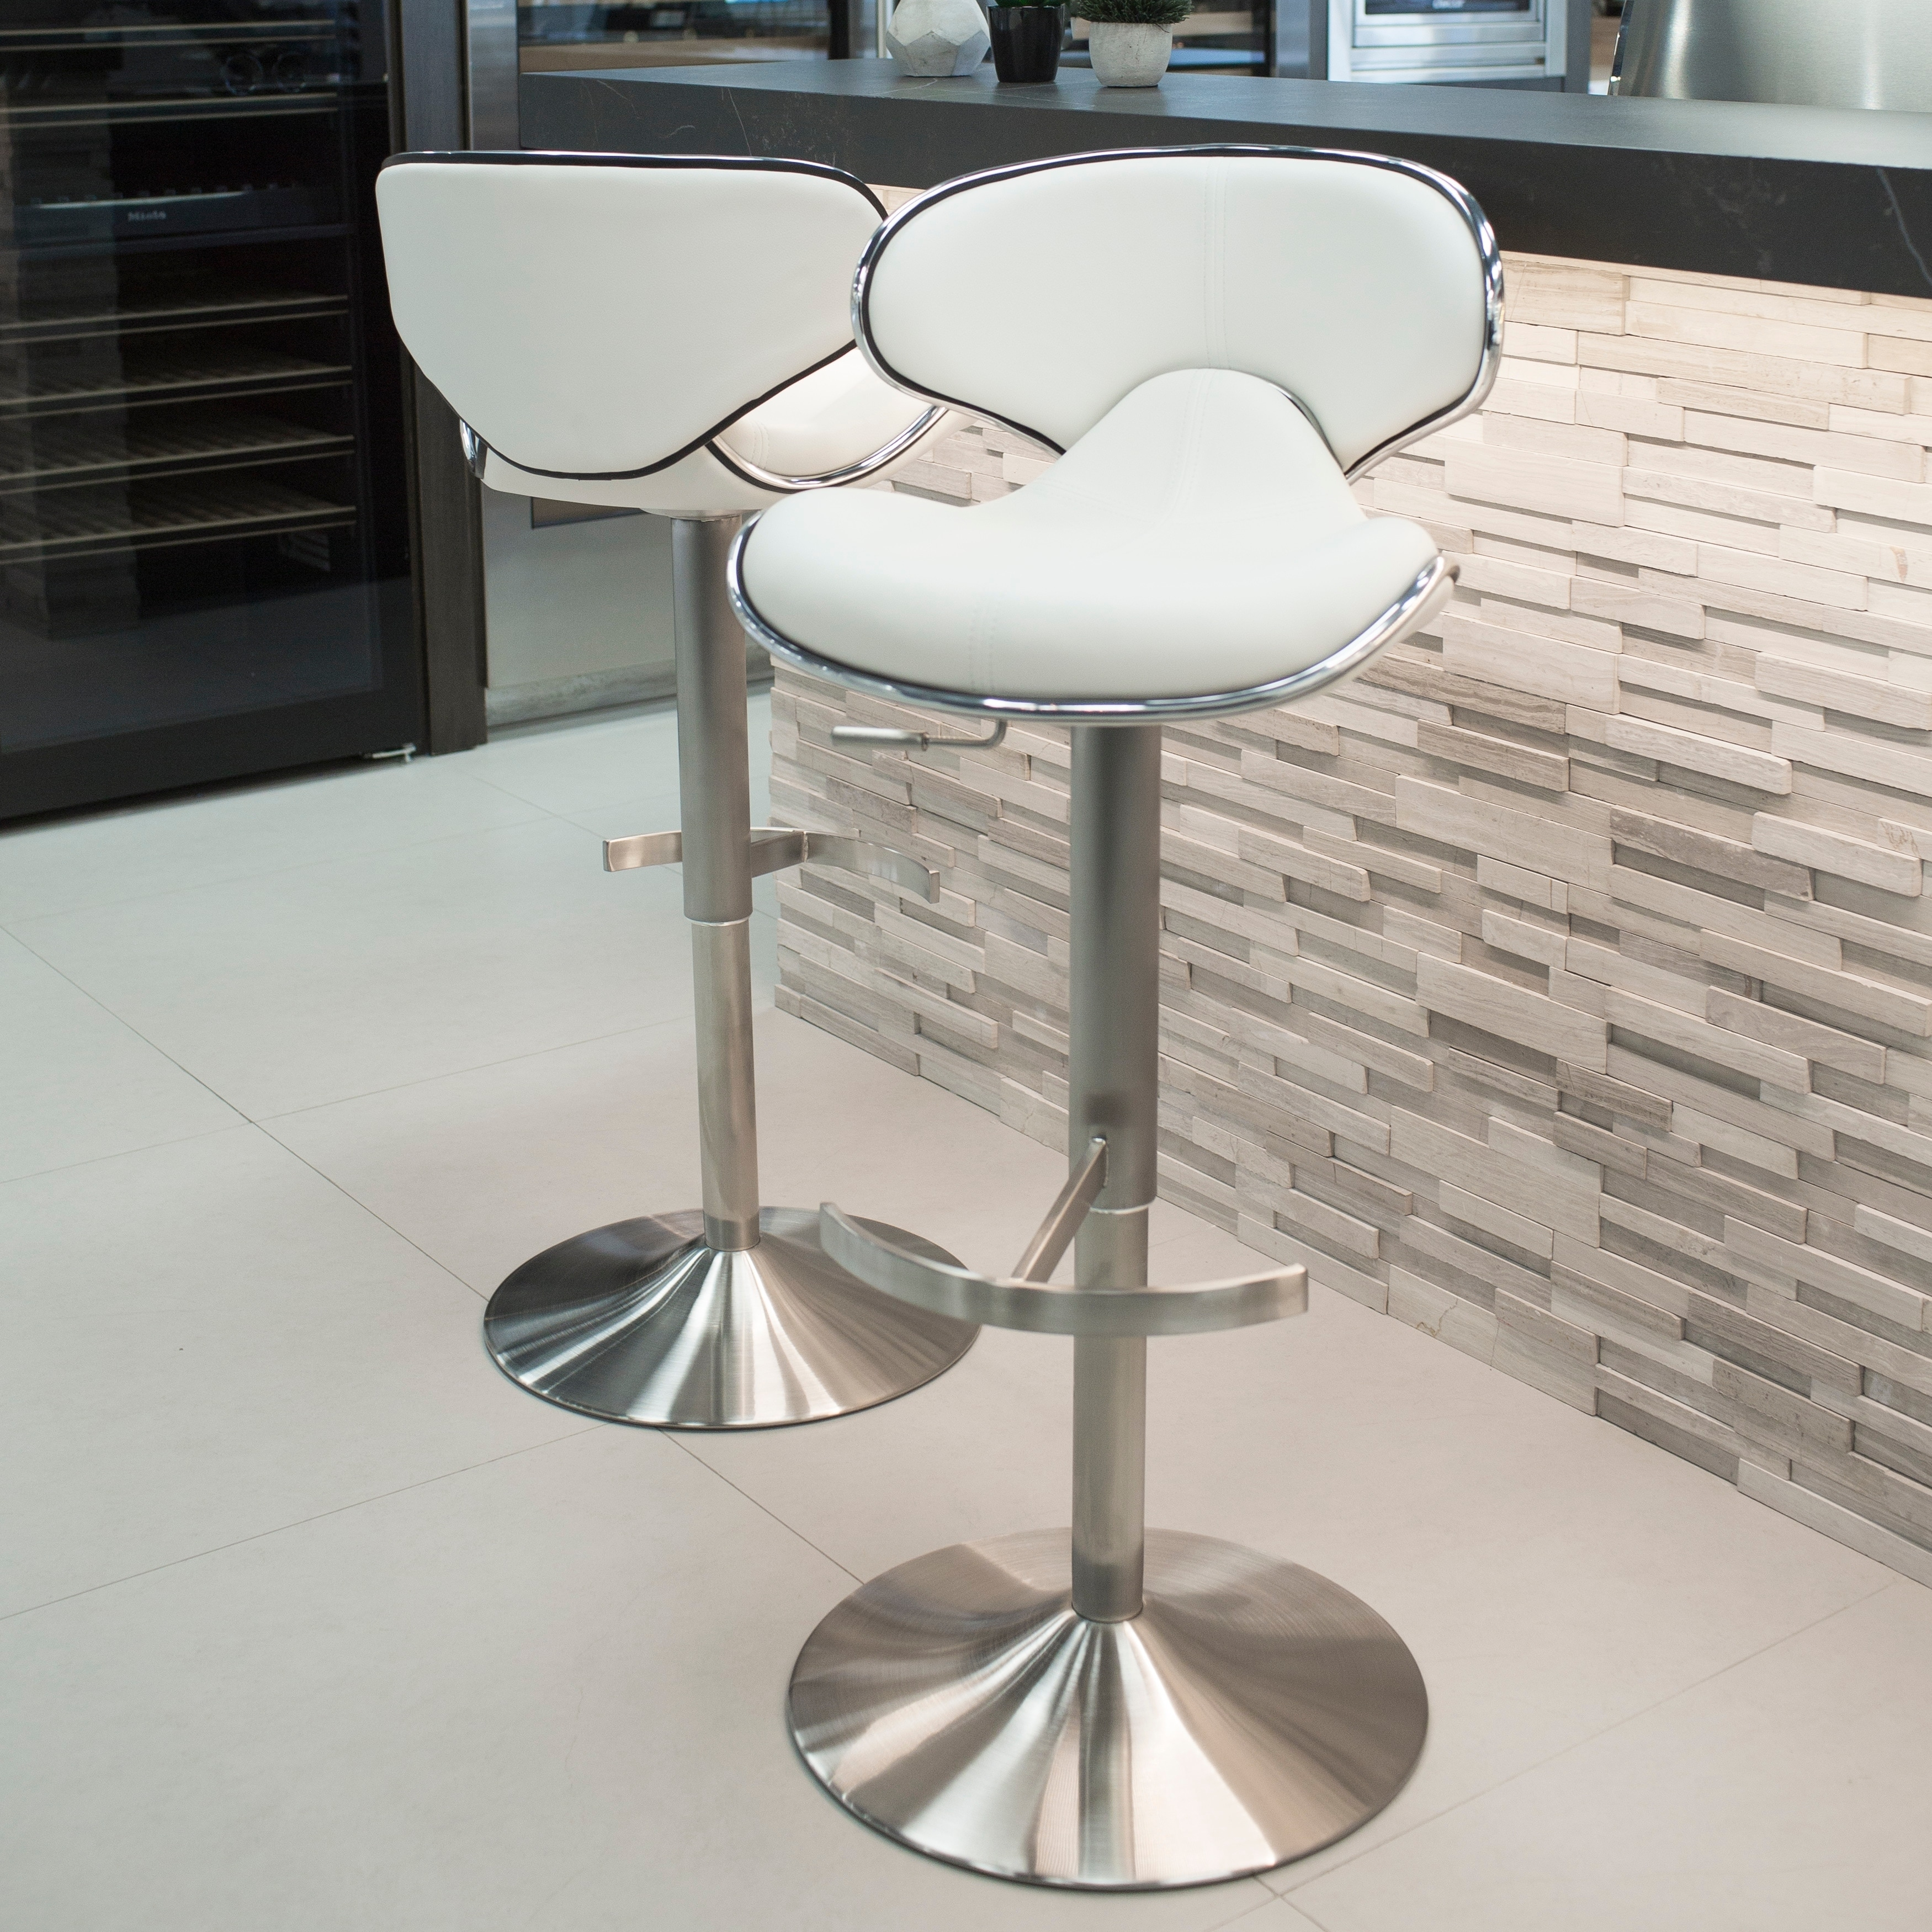 Phenomenal Brushed Stainless Steel Adjustable Height Bar Stool Swivel Squirreltailoven Fun Painted Chair Ideas Images Squirreltailovenorg